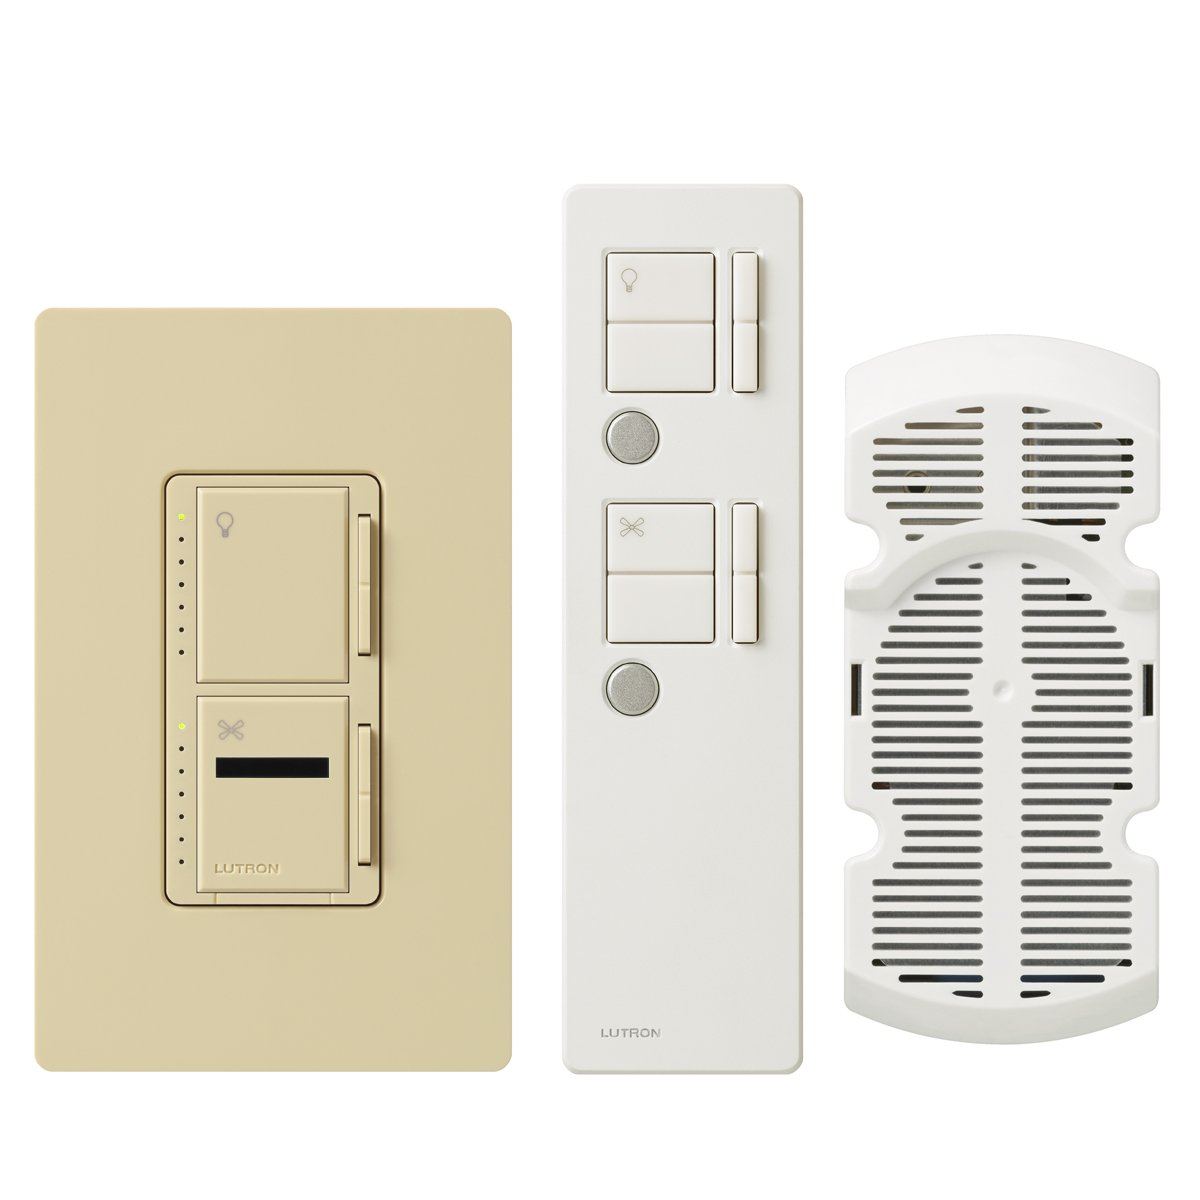 Lutron MIR-LFQTHW-IV Maestro IR 300-watt Single Pole Fan and Light Control Kit, Ivory by Lutron